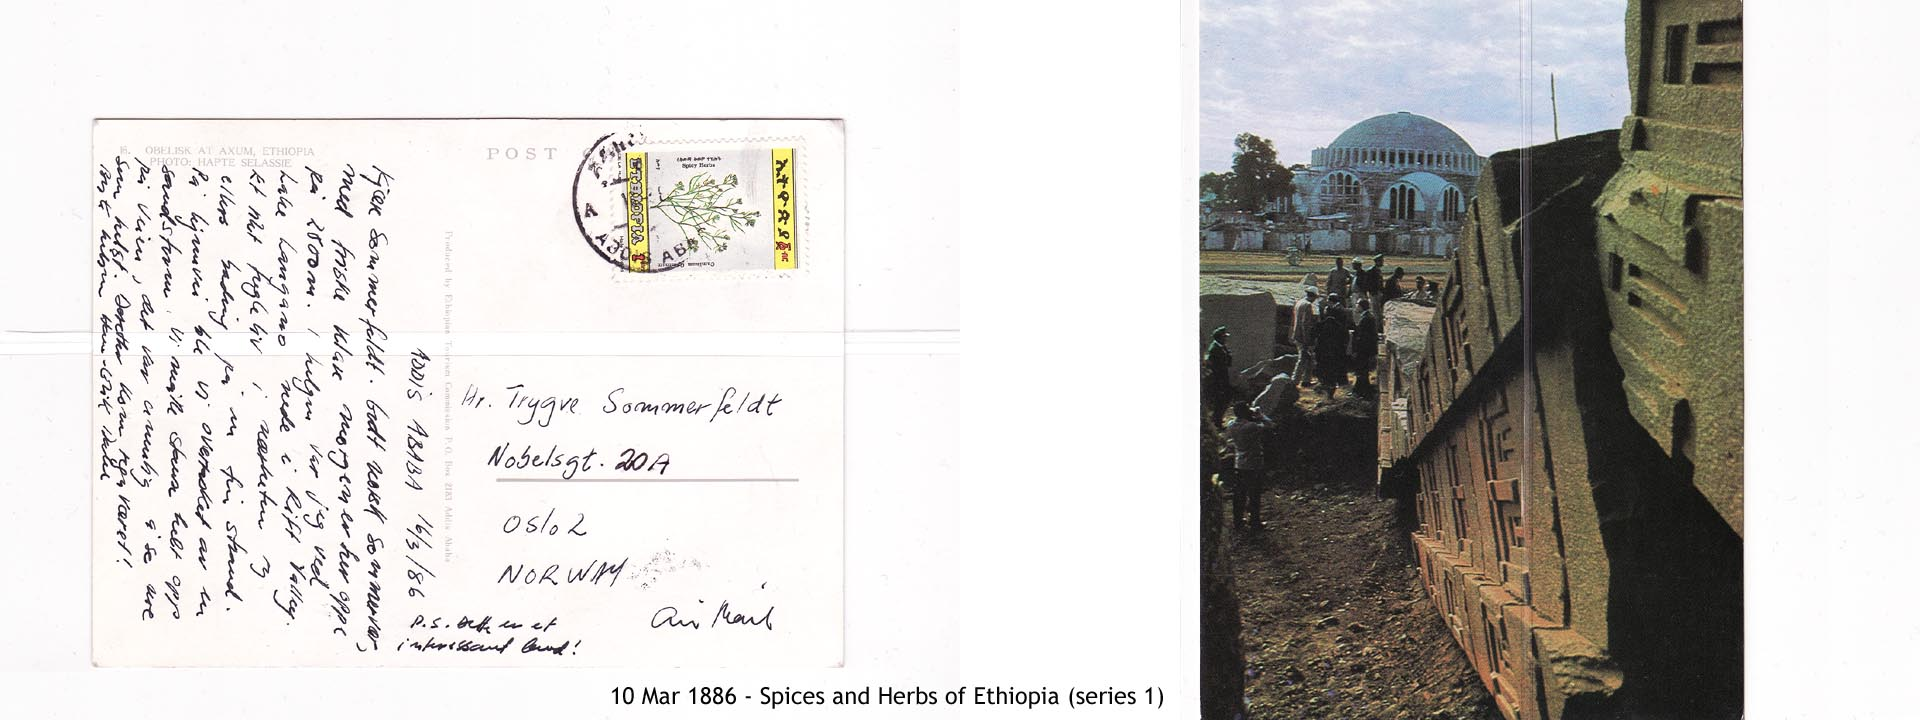 19860310 - Spices and Herbs of Ethiopia (series 1)